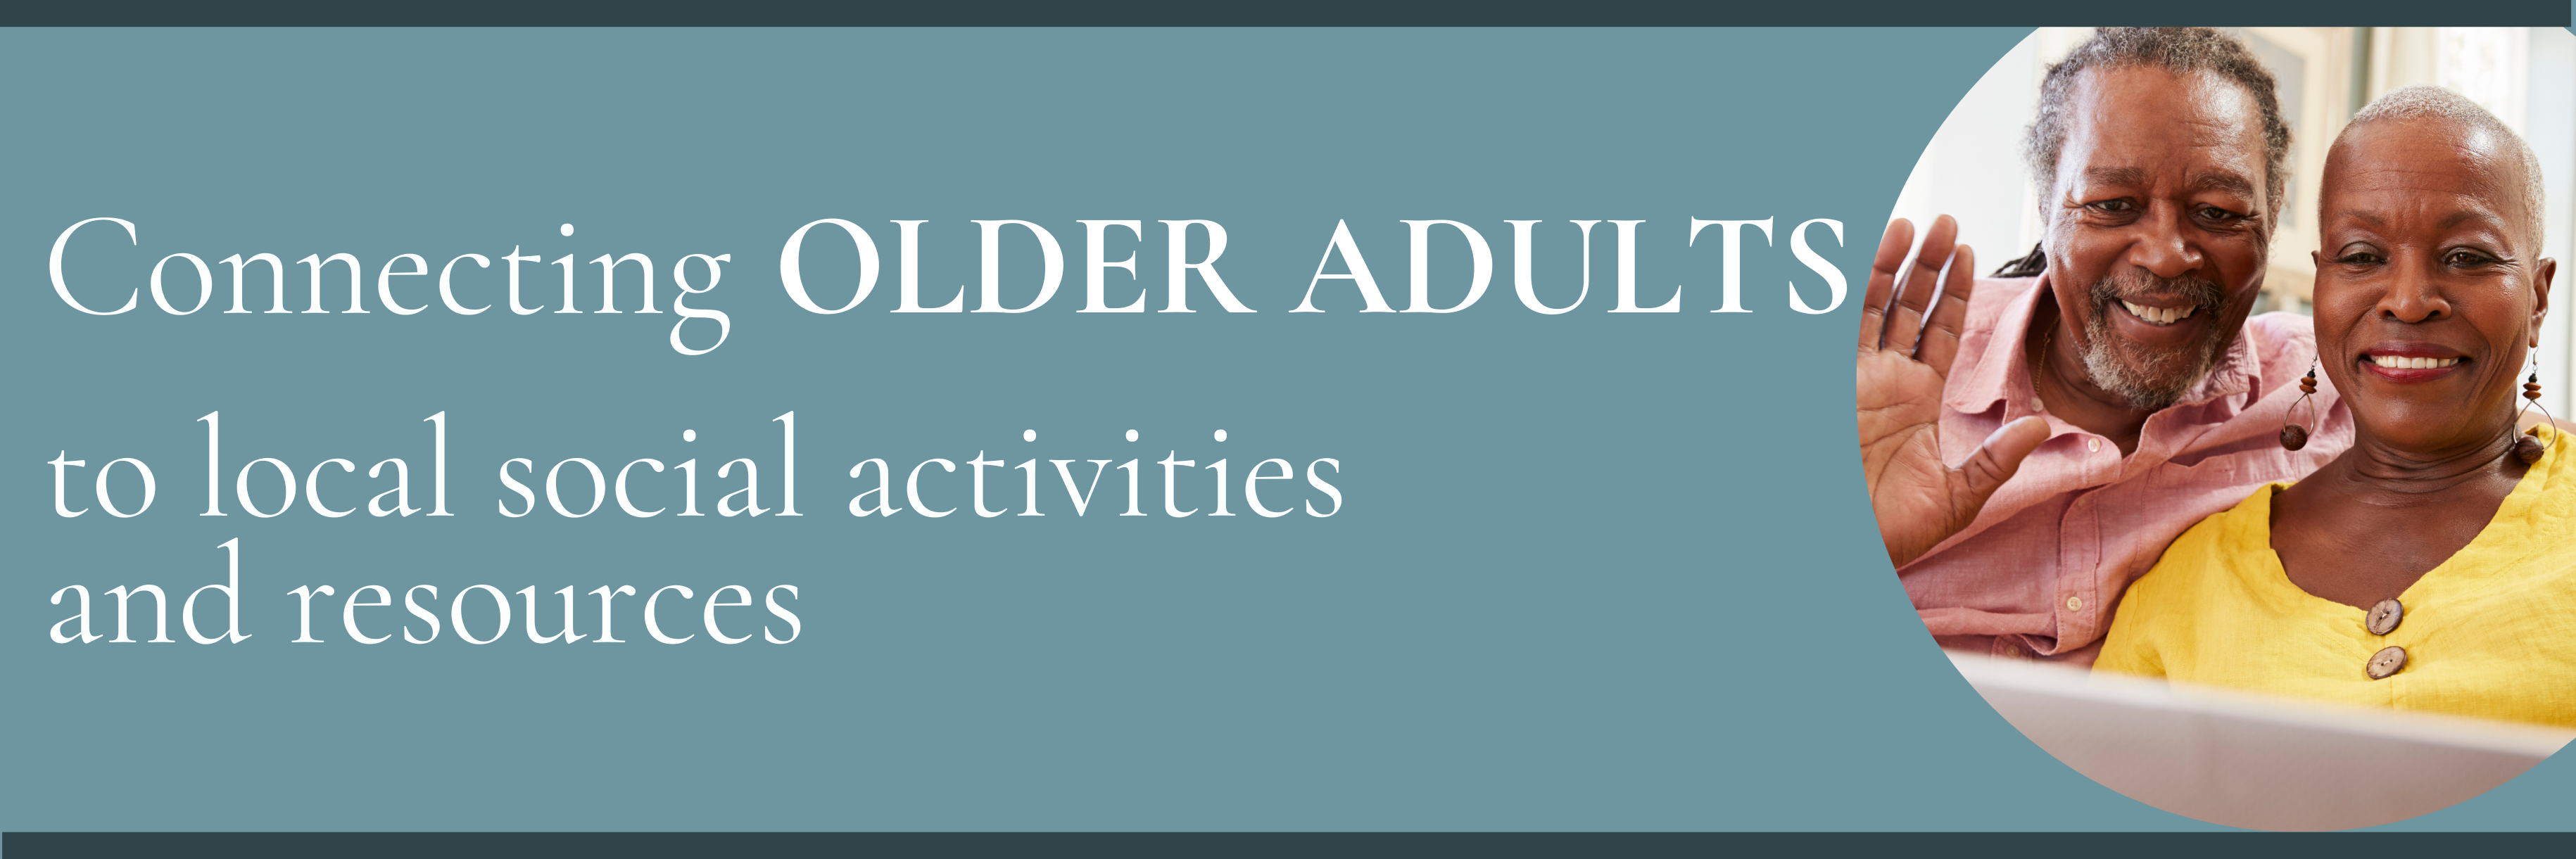 Connecting Older Adults to Local Activities and Resources Page Header